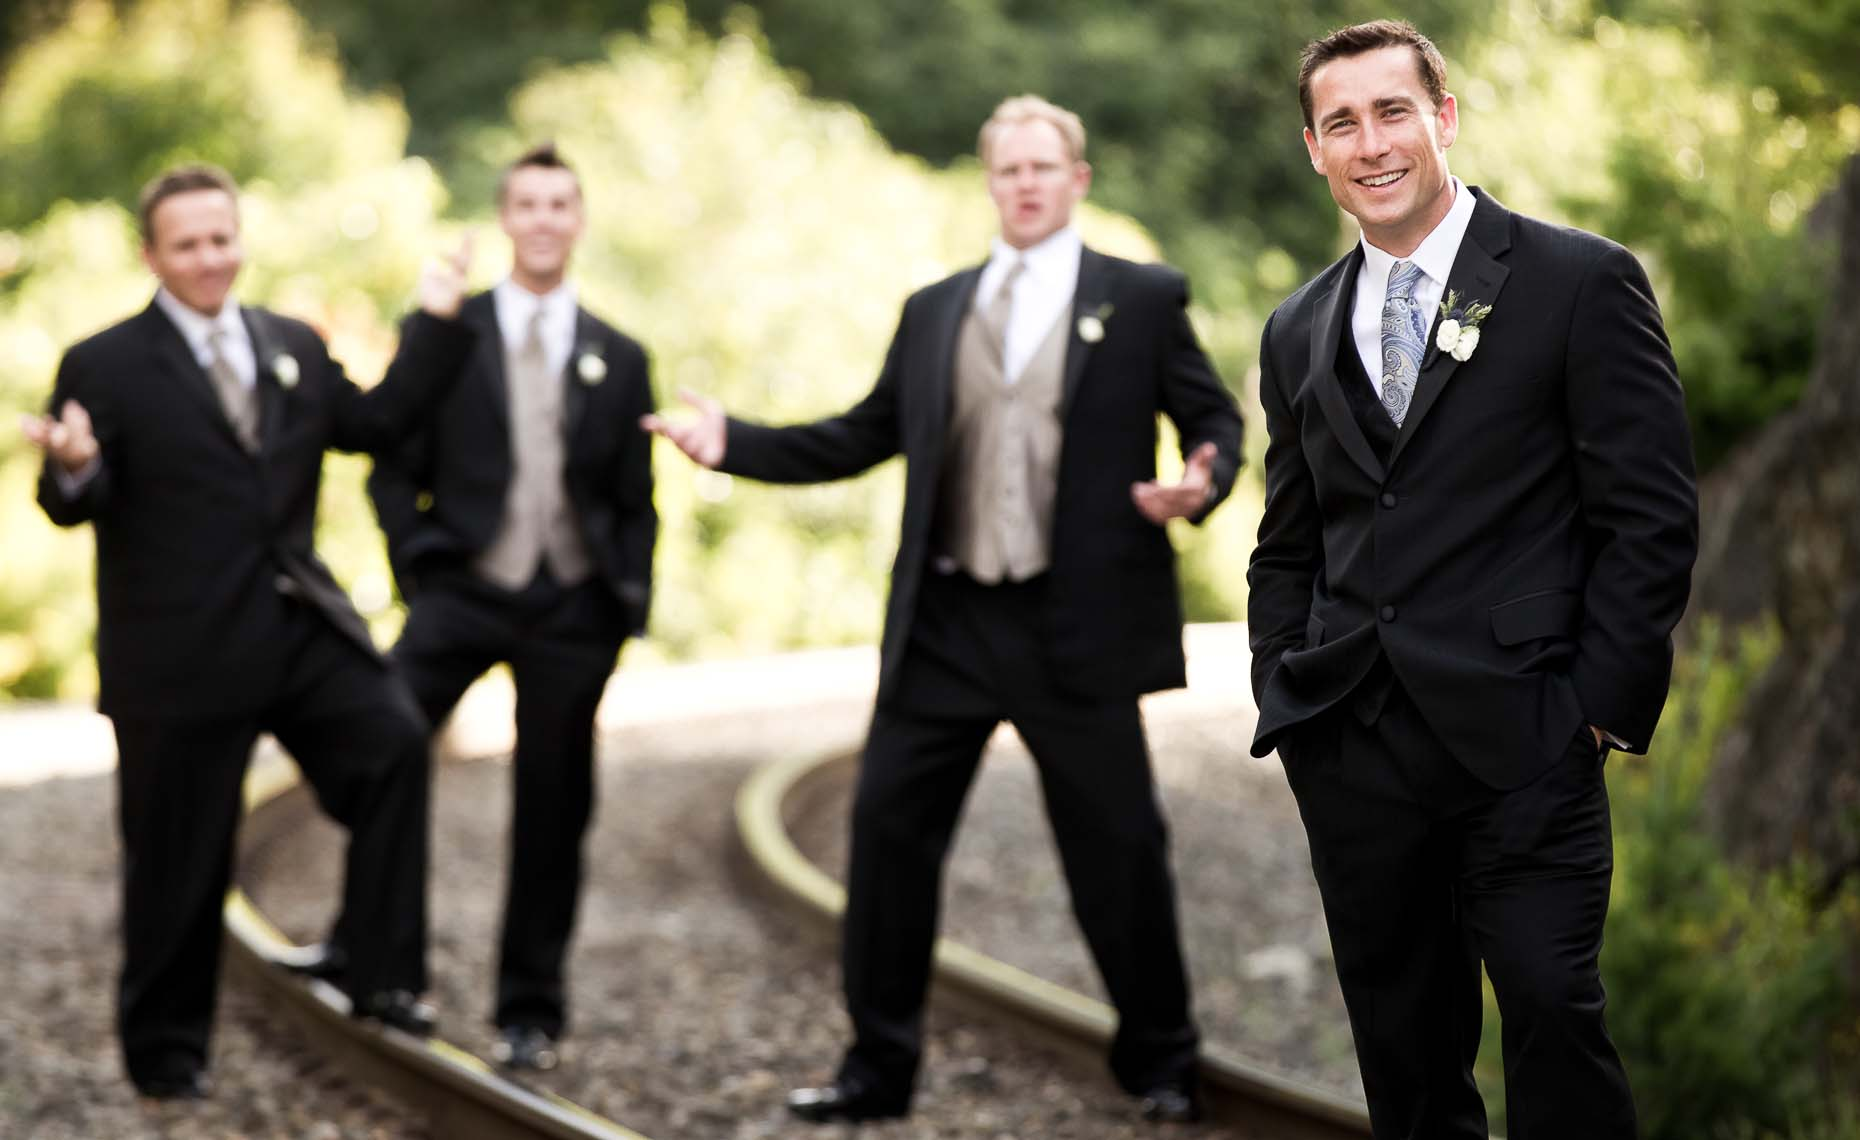 groomsmen wedding portrait from whistler photographer